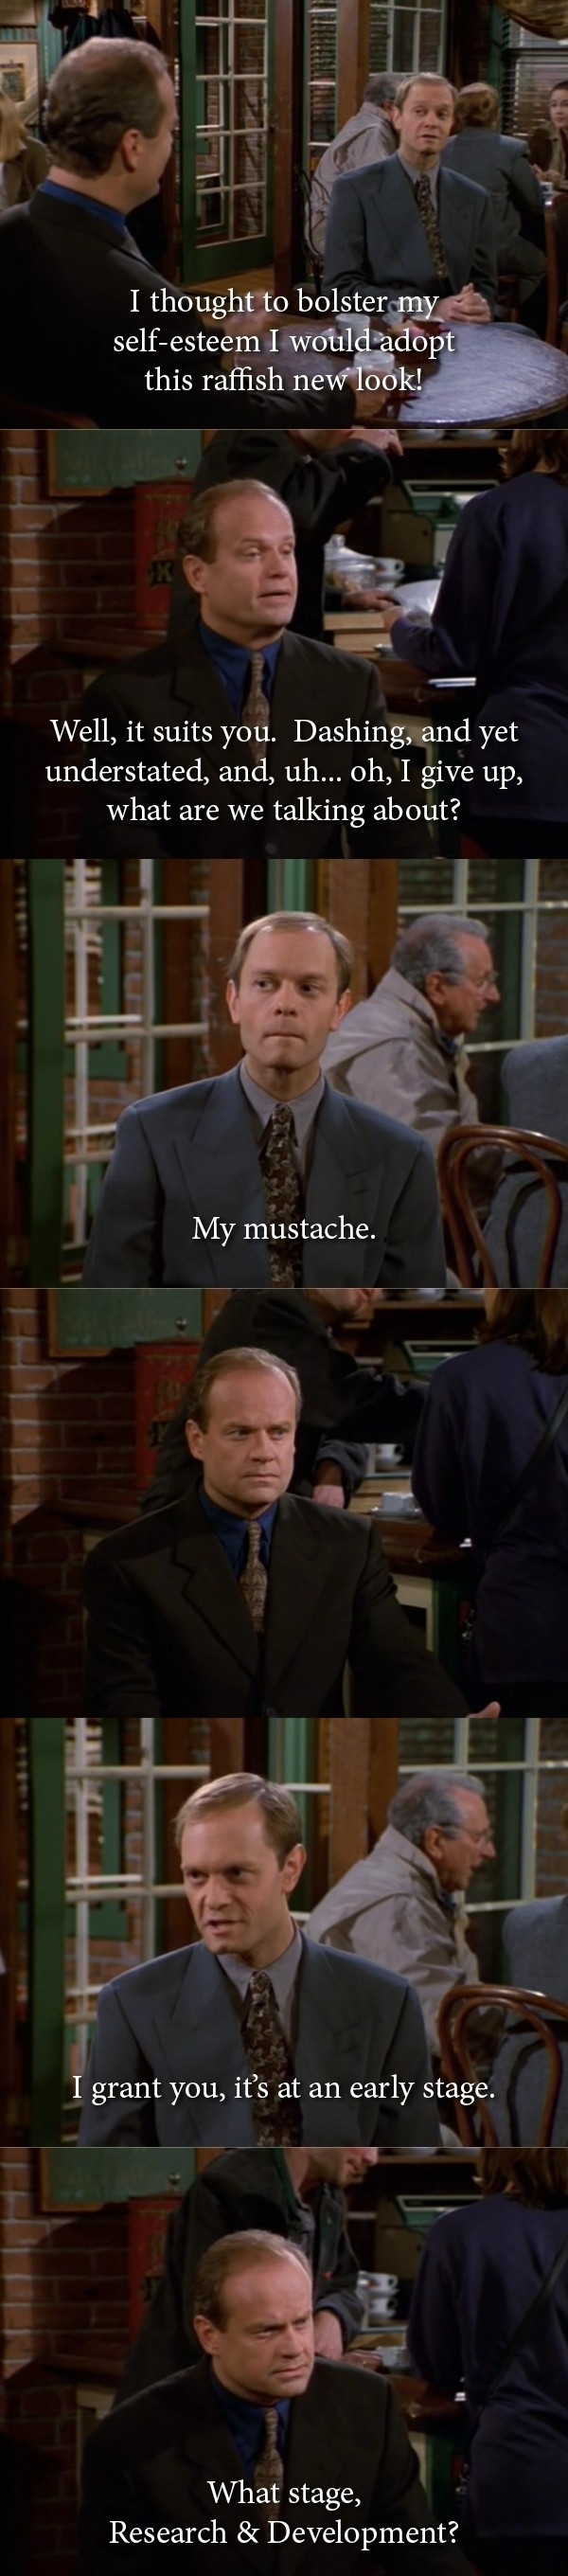 A Frasier tv show character tells his friend he's adopted a new look by growing a mustache only he has no visible mustache to which his friend replies what stage is your mustache at, research and development?